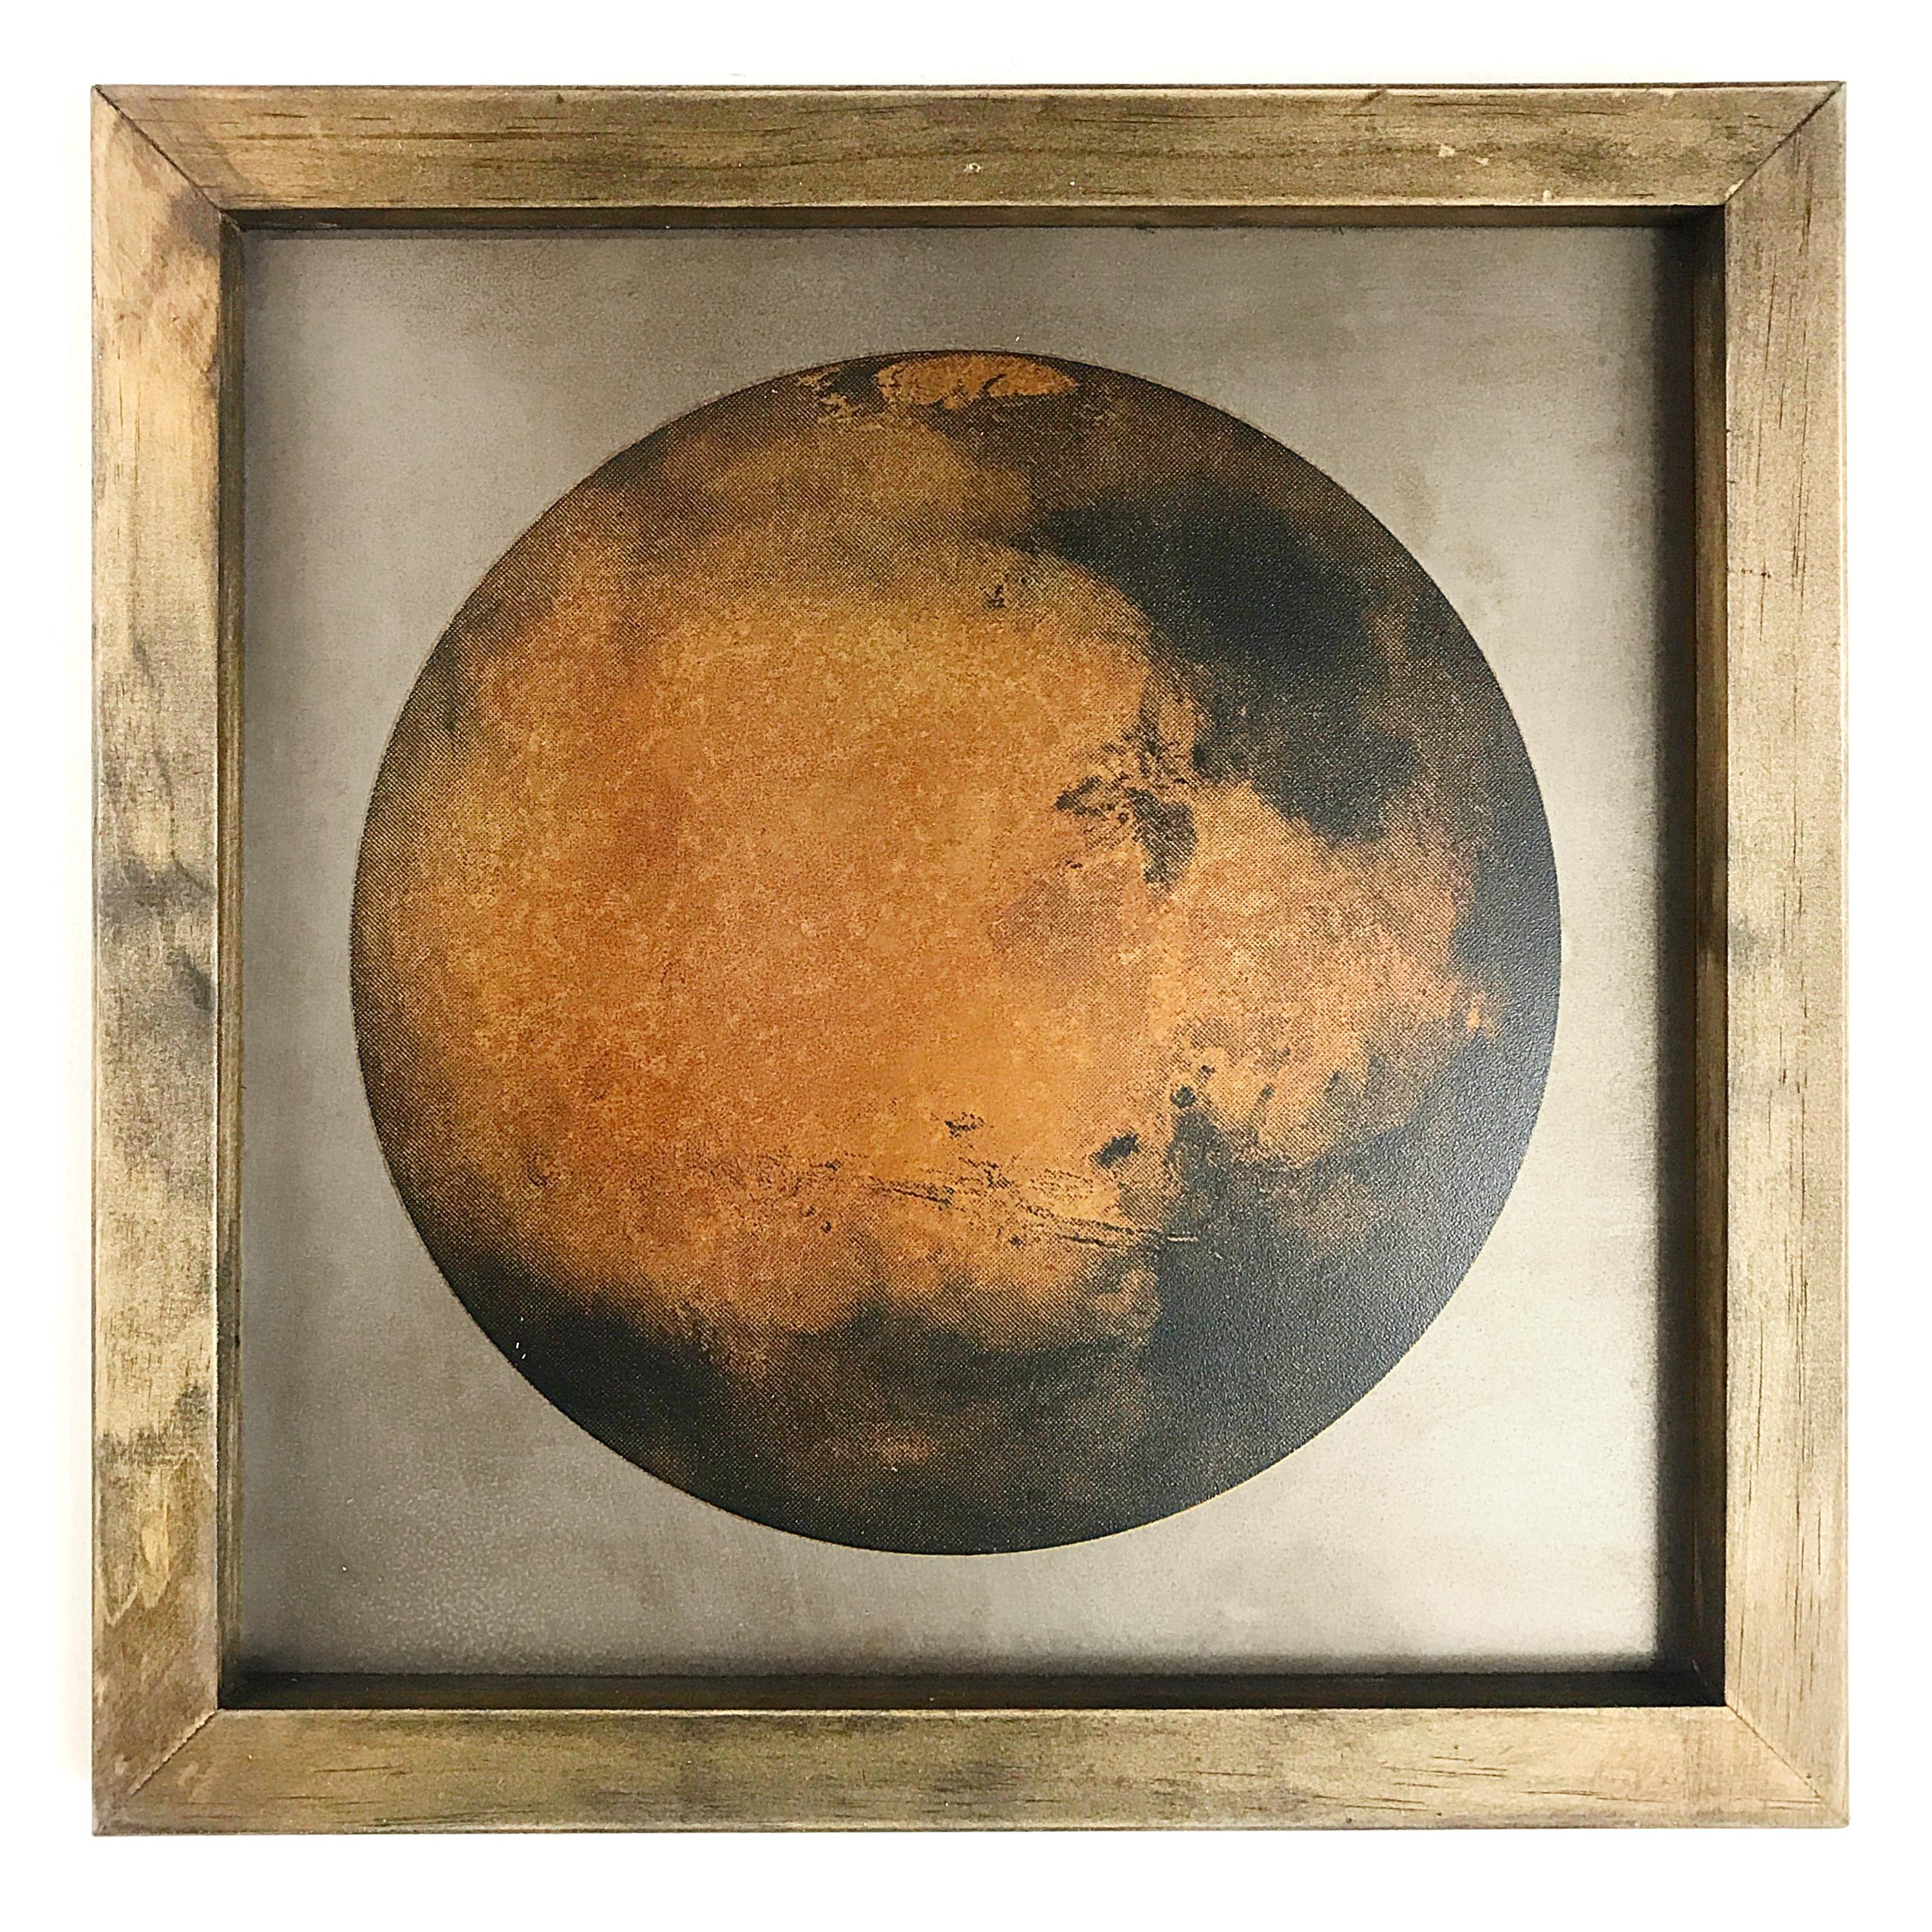 Creating an Image of Mars with Sheets of Rusted Metal